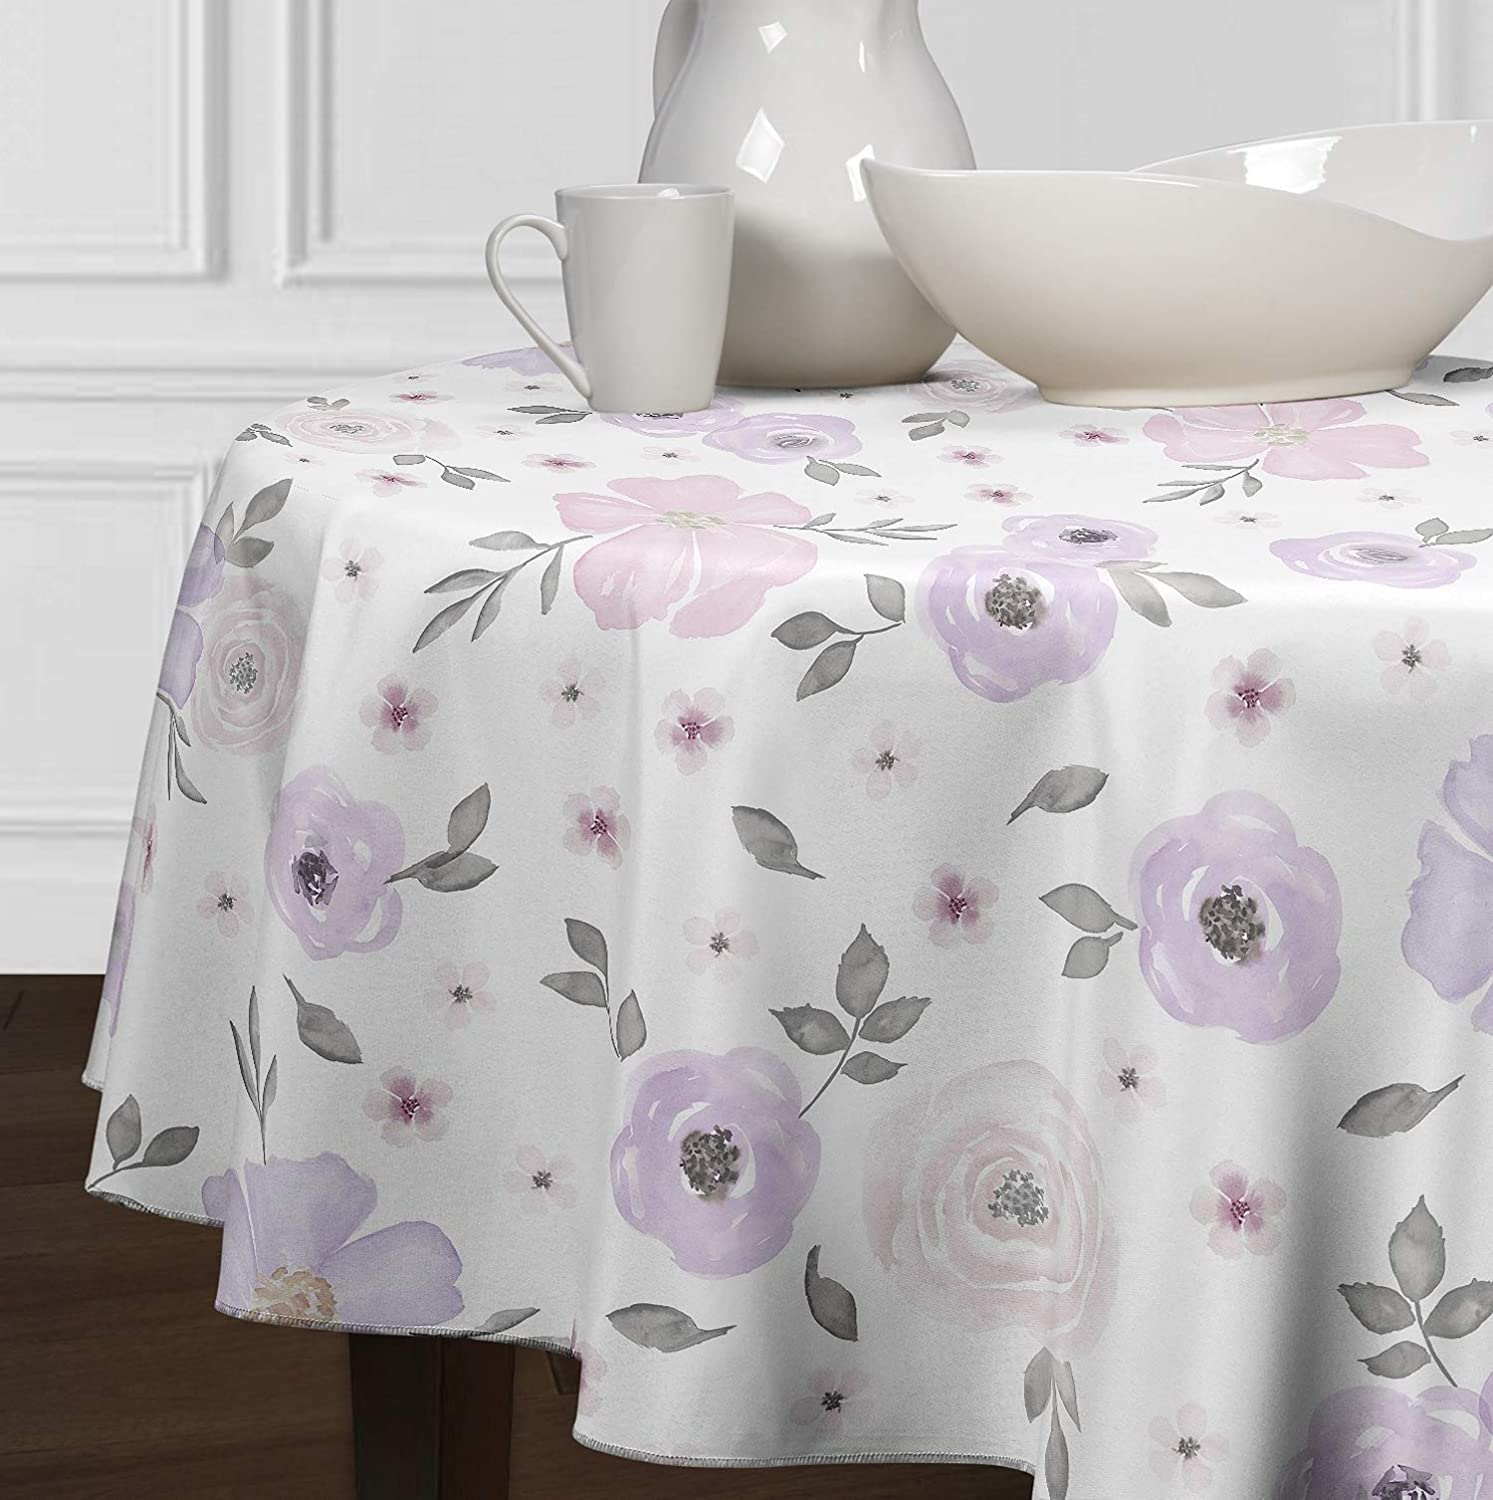 Pink A LuxeHome Lavender Purple Grey and White Shabby Chic Watercolor Rose Floral Tablecloths Dining Room Kitchen Round 72